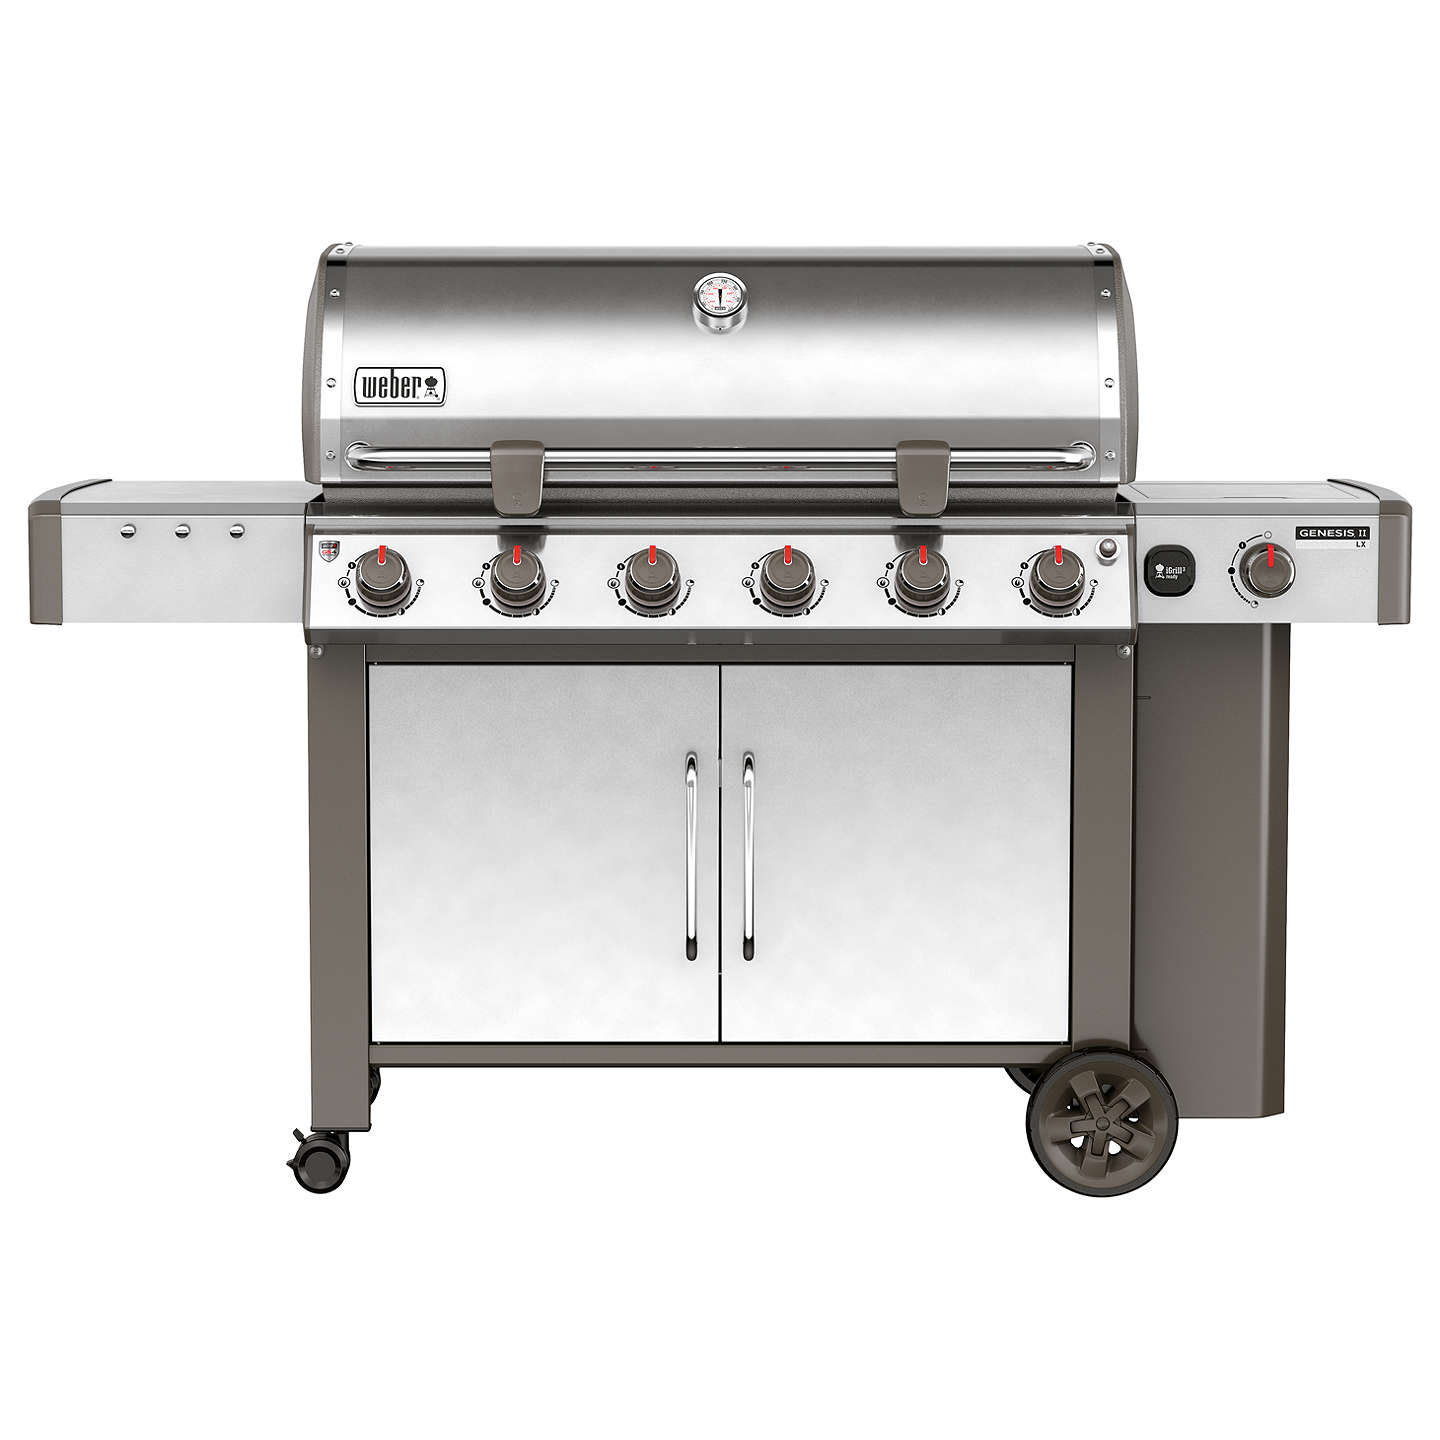 BuyWeber Genesis II LX S-640 6-Burner Gas BBQ, Silver Online at johnlewis.com